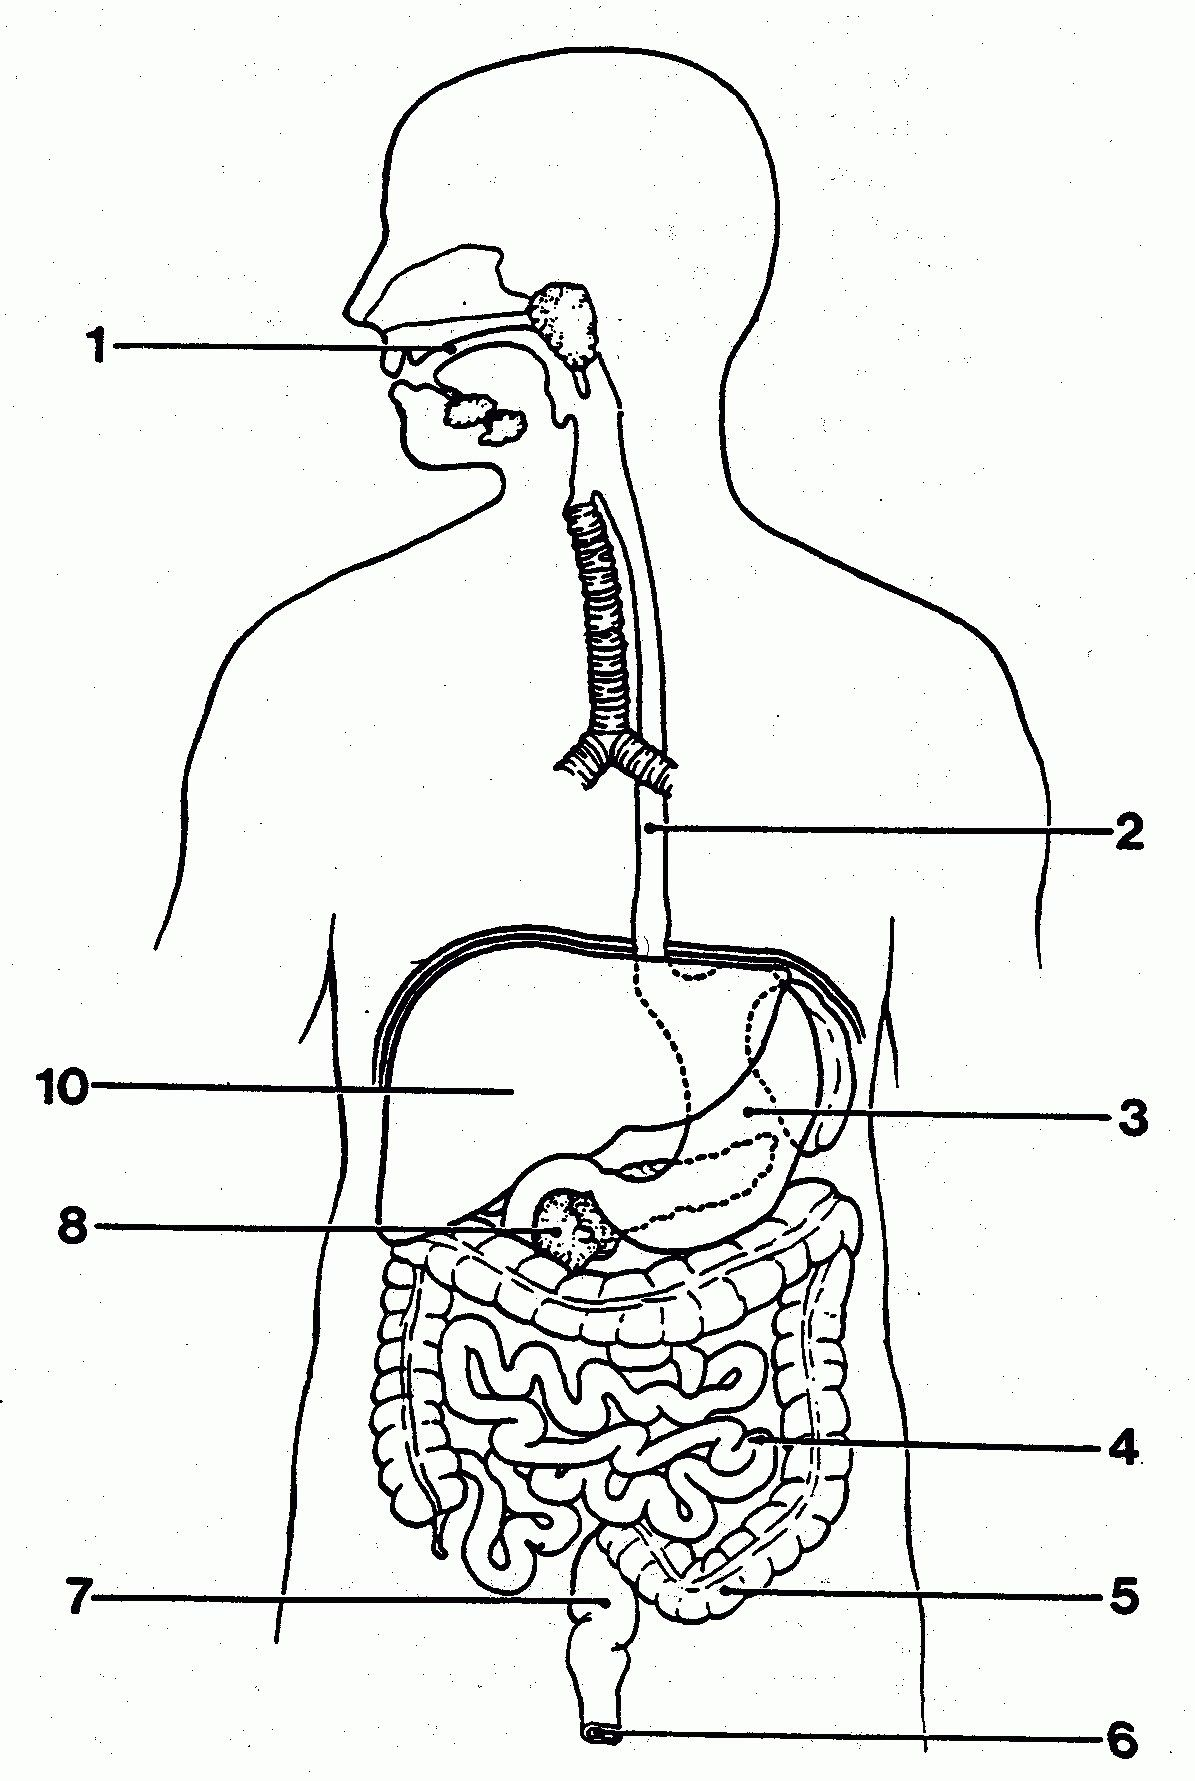 simple digestive system diagram simple digestive system diagram pictures simple digestive system diagram anatomy and [ 1195 x 1781 Pixel ]